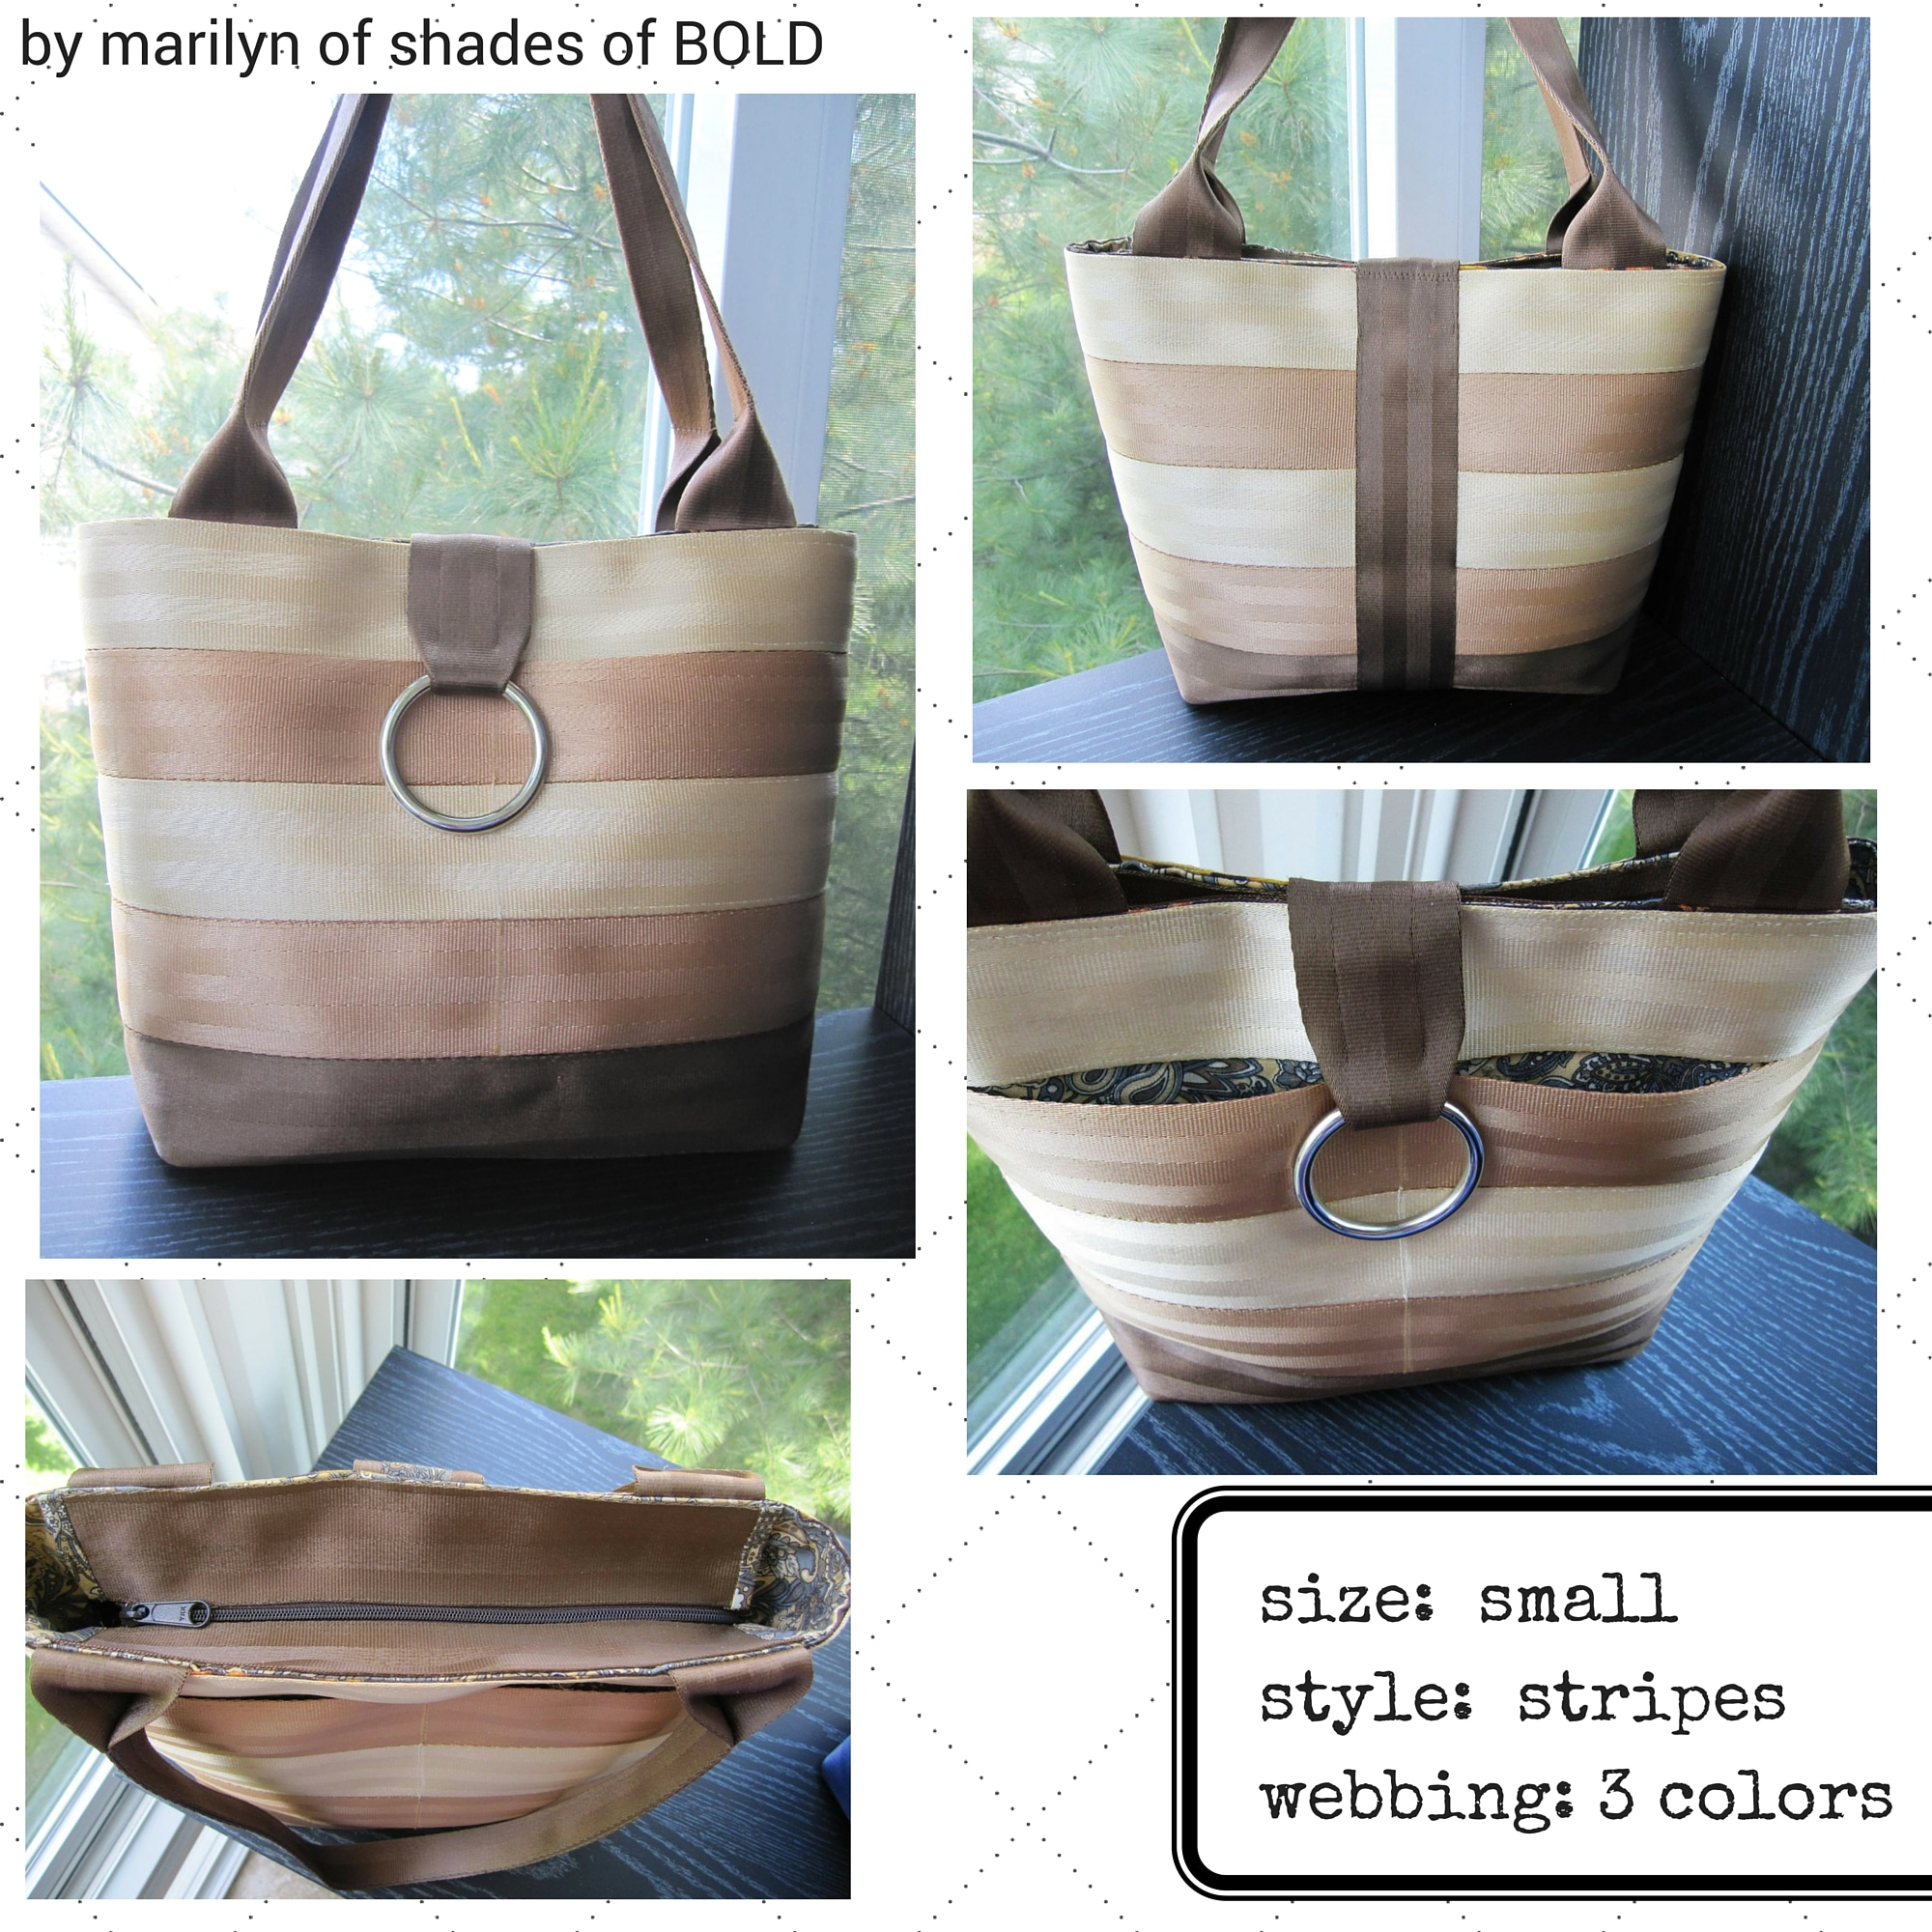 marilyn's earth tone tote